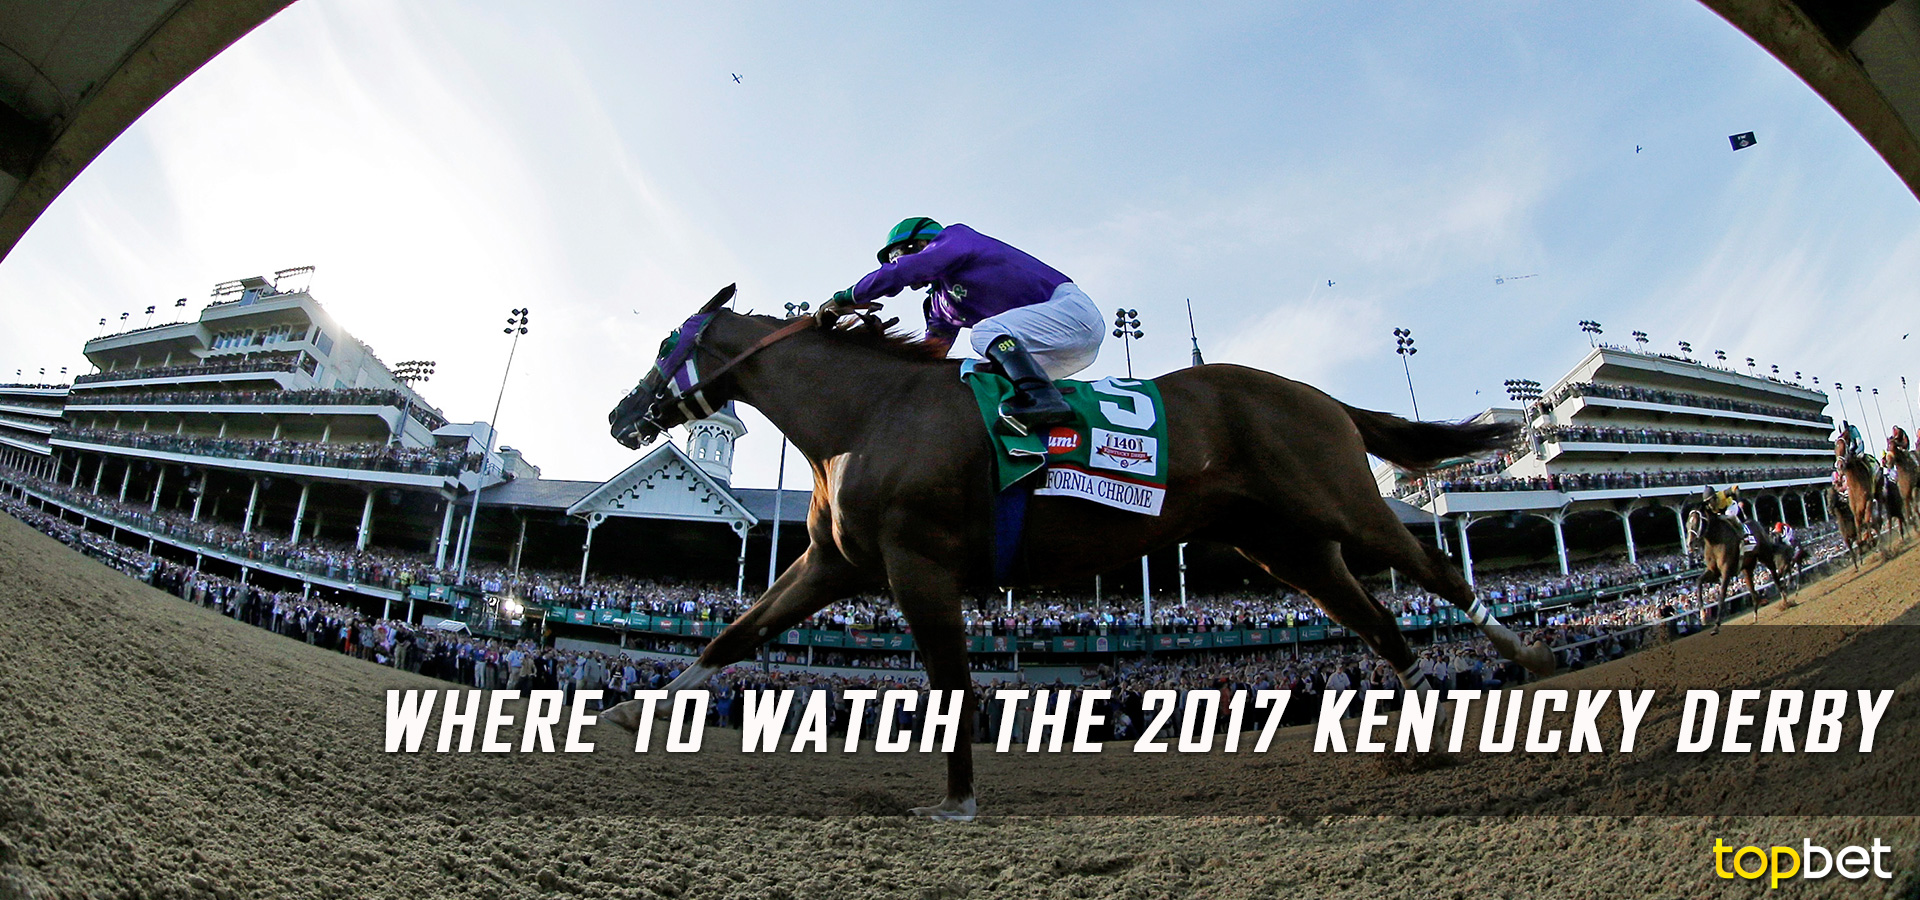 college football odds predictions kentucky derby 2017 final results